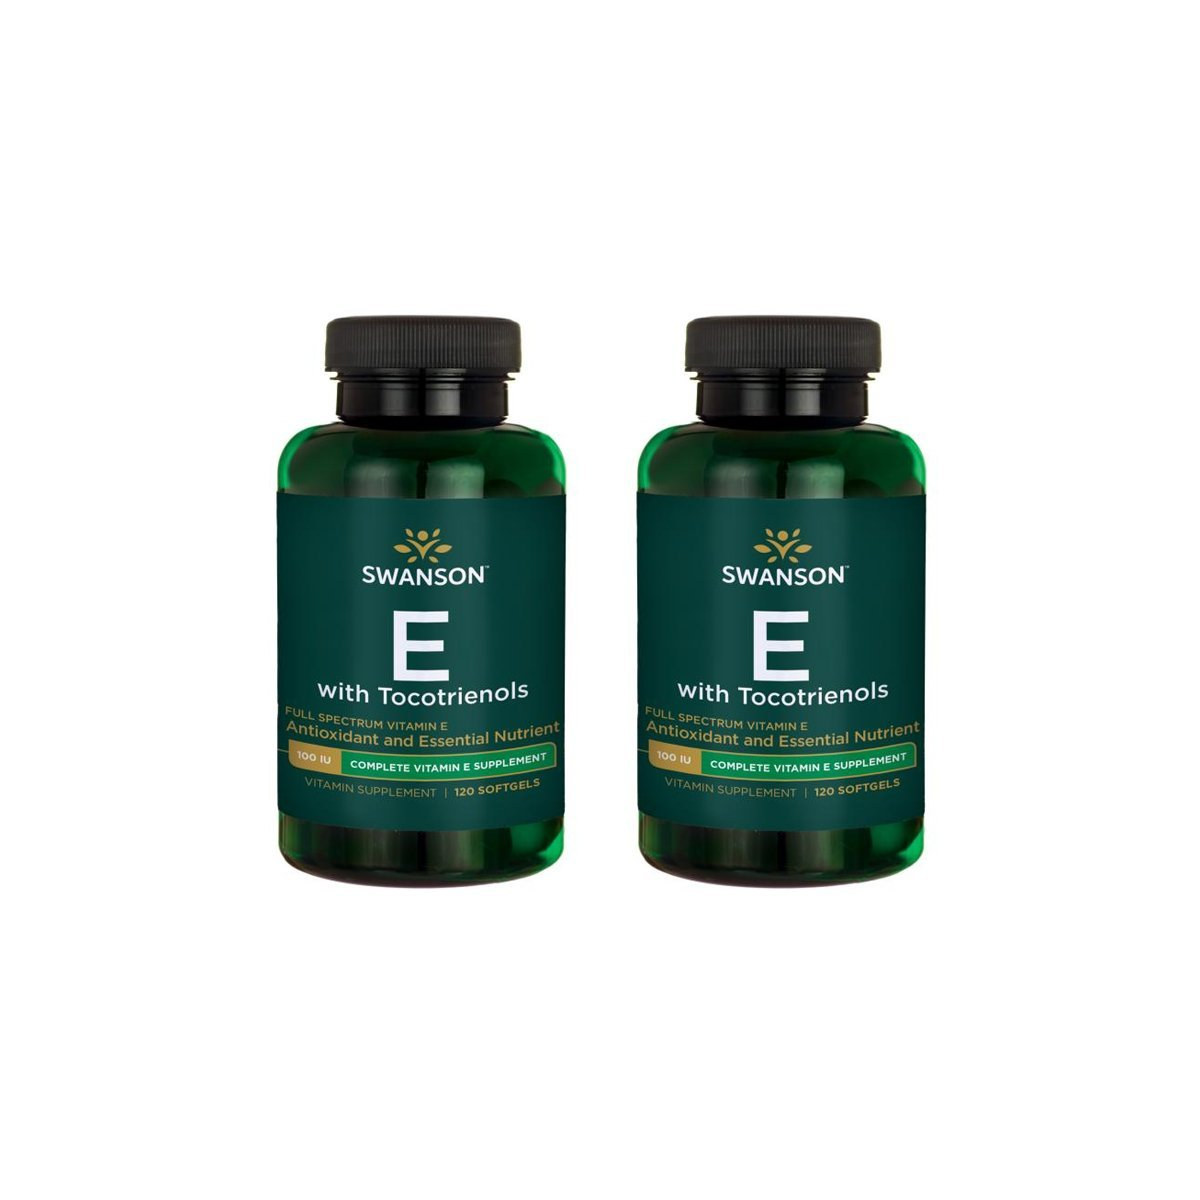 Swanson Vitamin E with Tocotrienols - Full Spectrum 120 Sgels 2 Pack